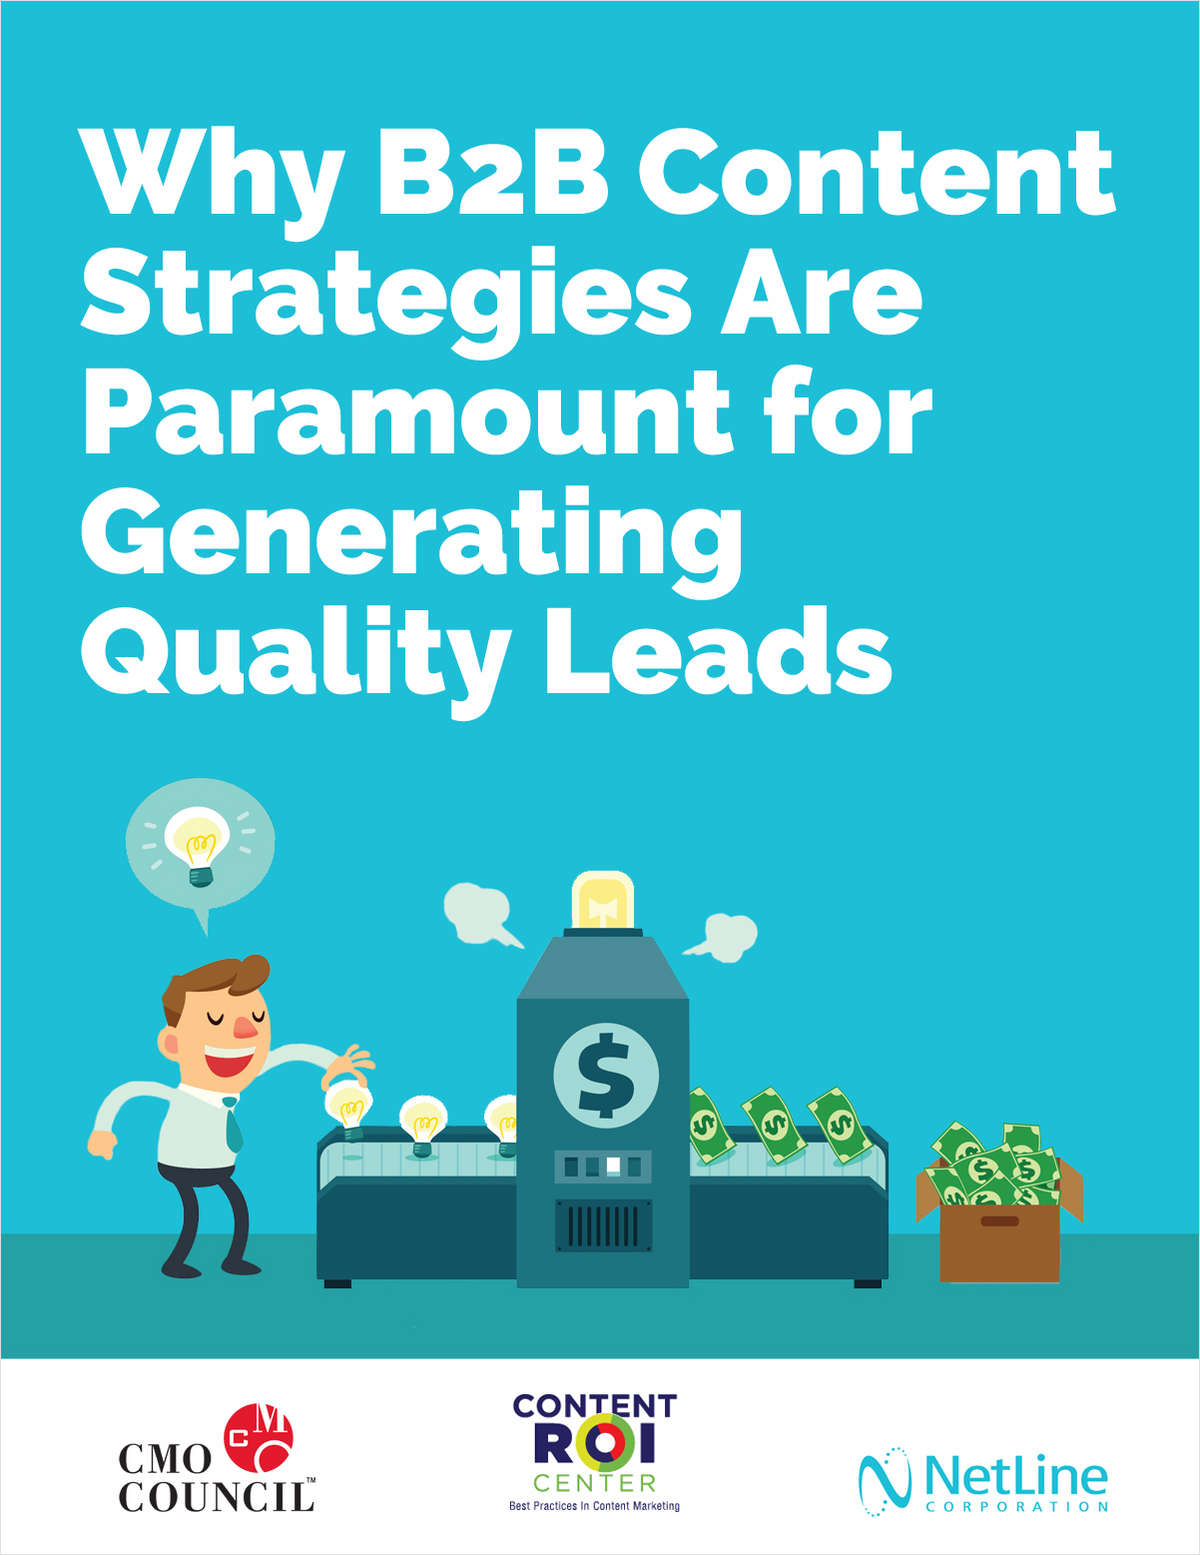 Why B2B Content Strategies Are Paramount for Generating Quality Leads